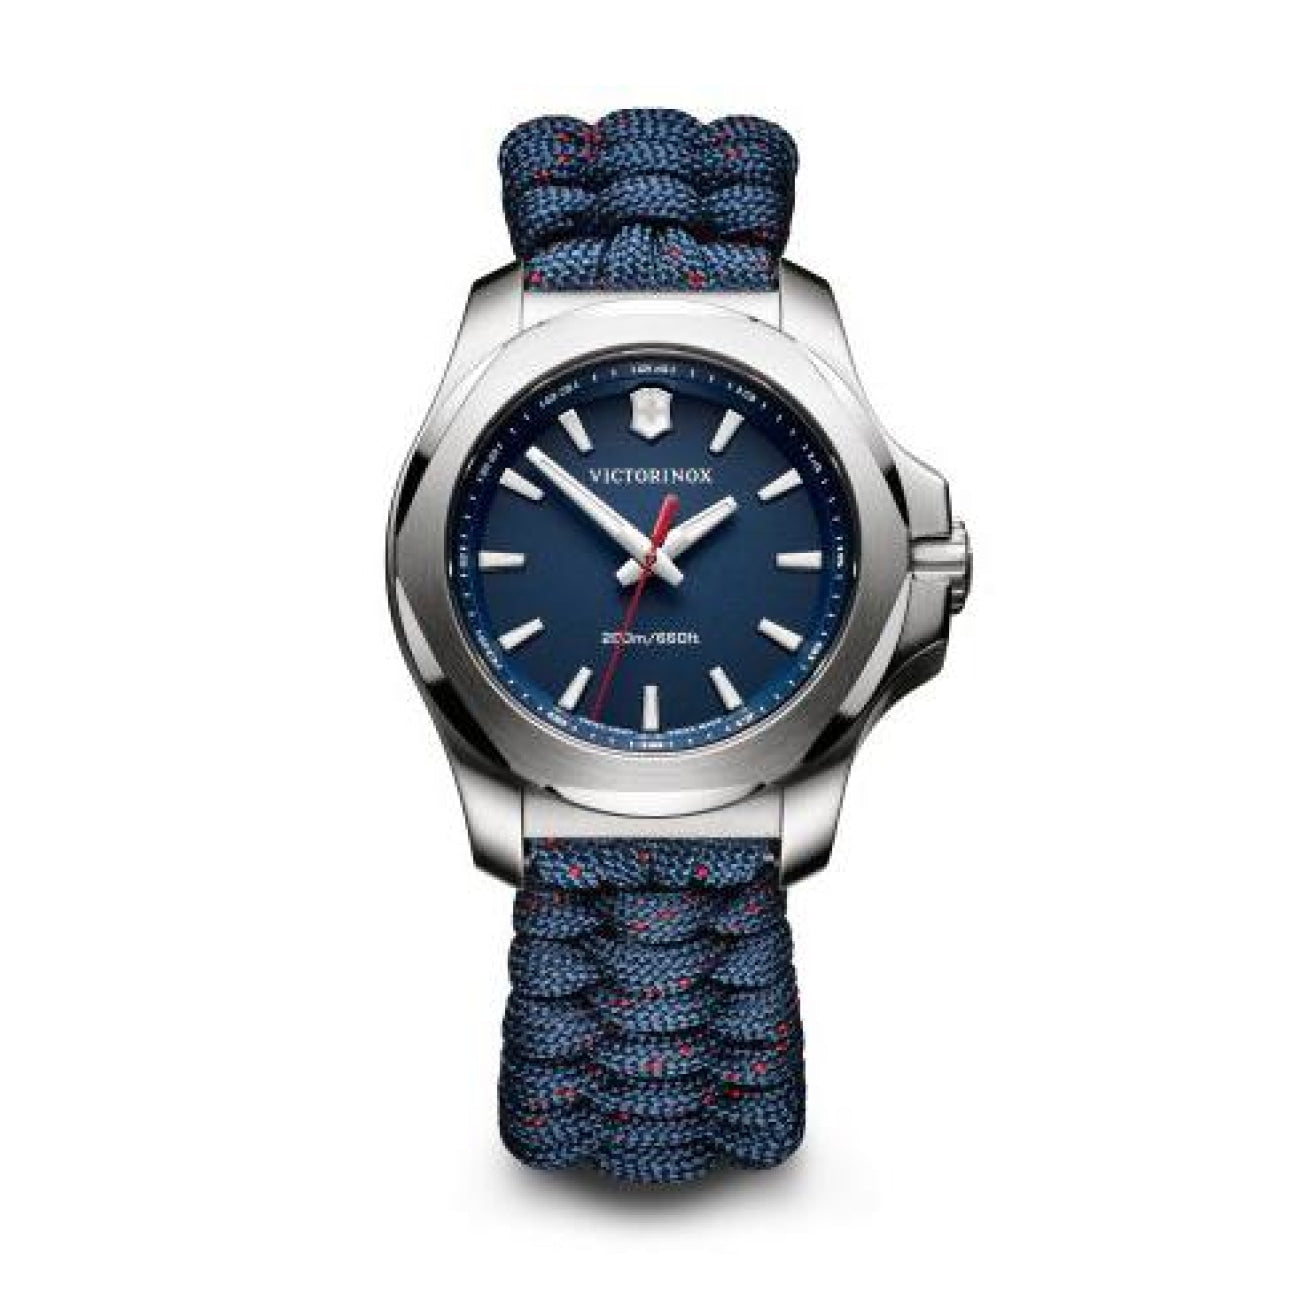 Victorinox Swiss Army Watches - I.N.O.X. V | Manfredi Jewels